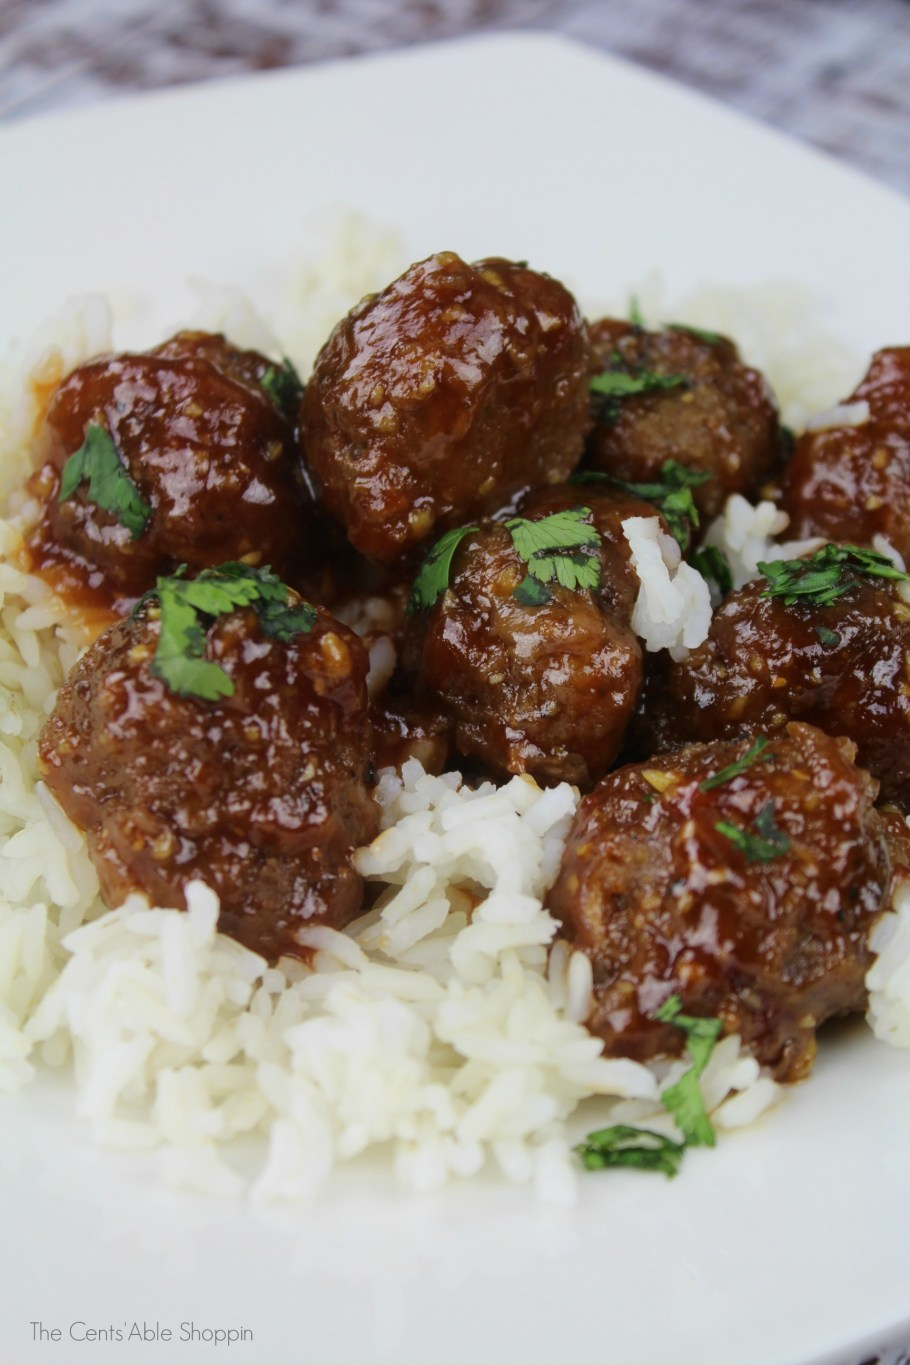 Fresh meatballs, wrapped in a tangy, kicked up sauce - delicious over rice, or served as an appetizer! #meatballs #appetizer #easydinner #instantpot #crockpot